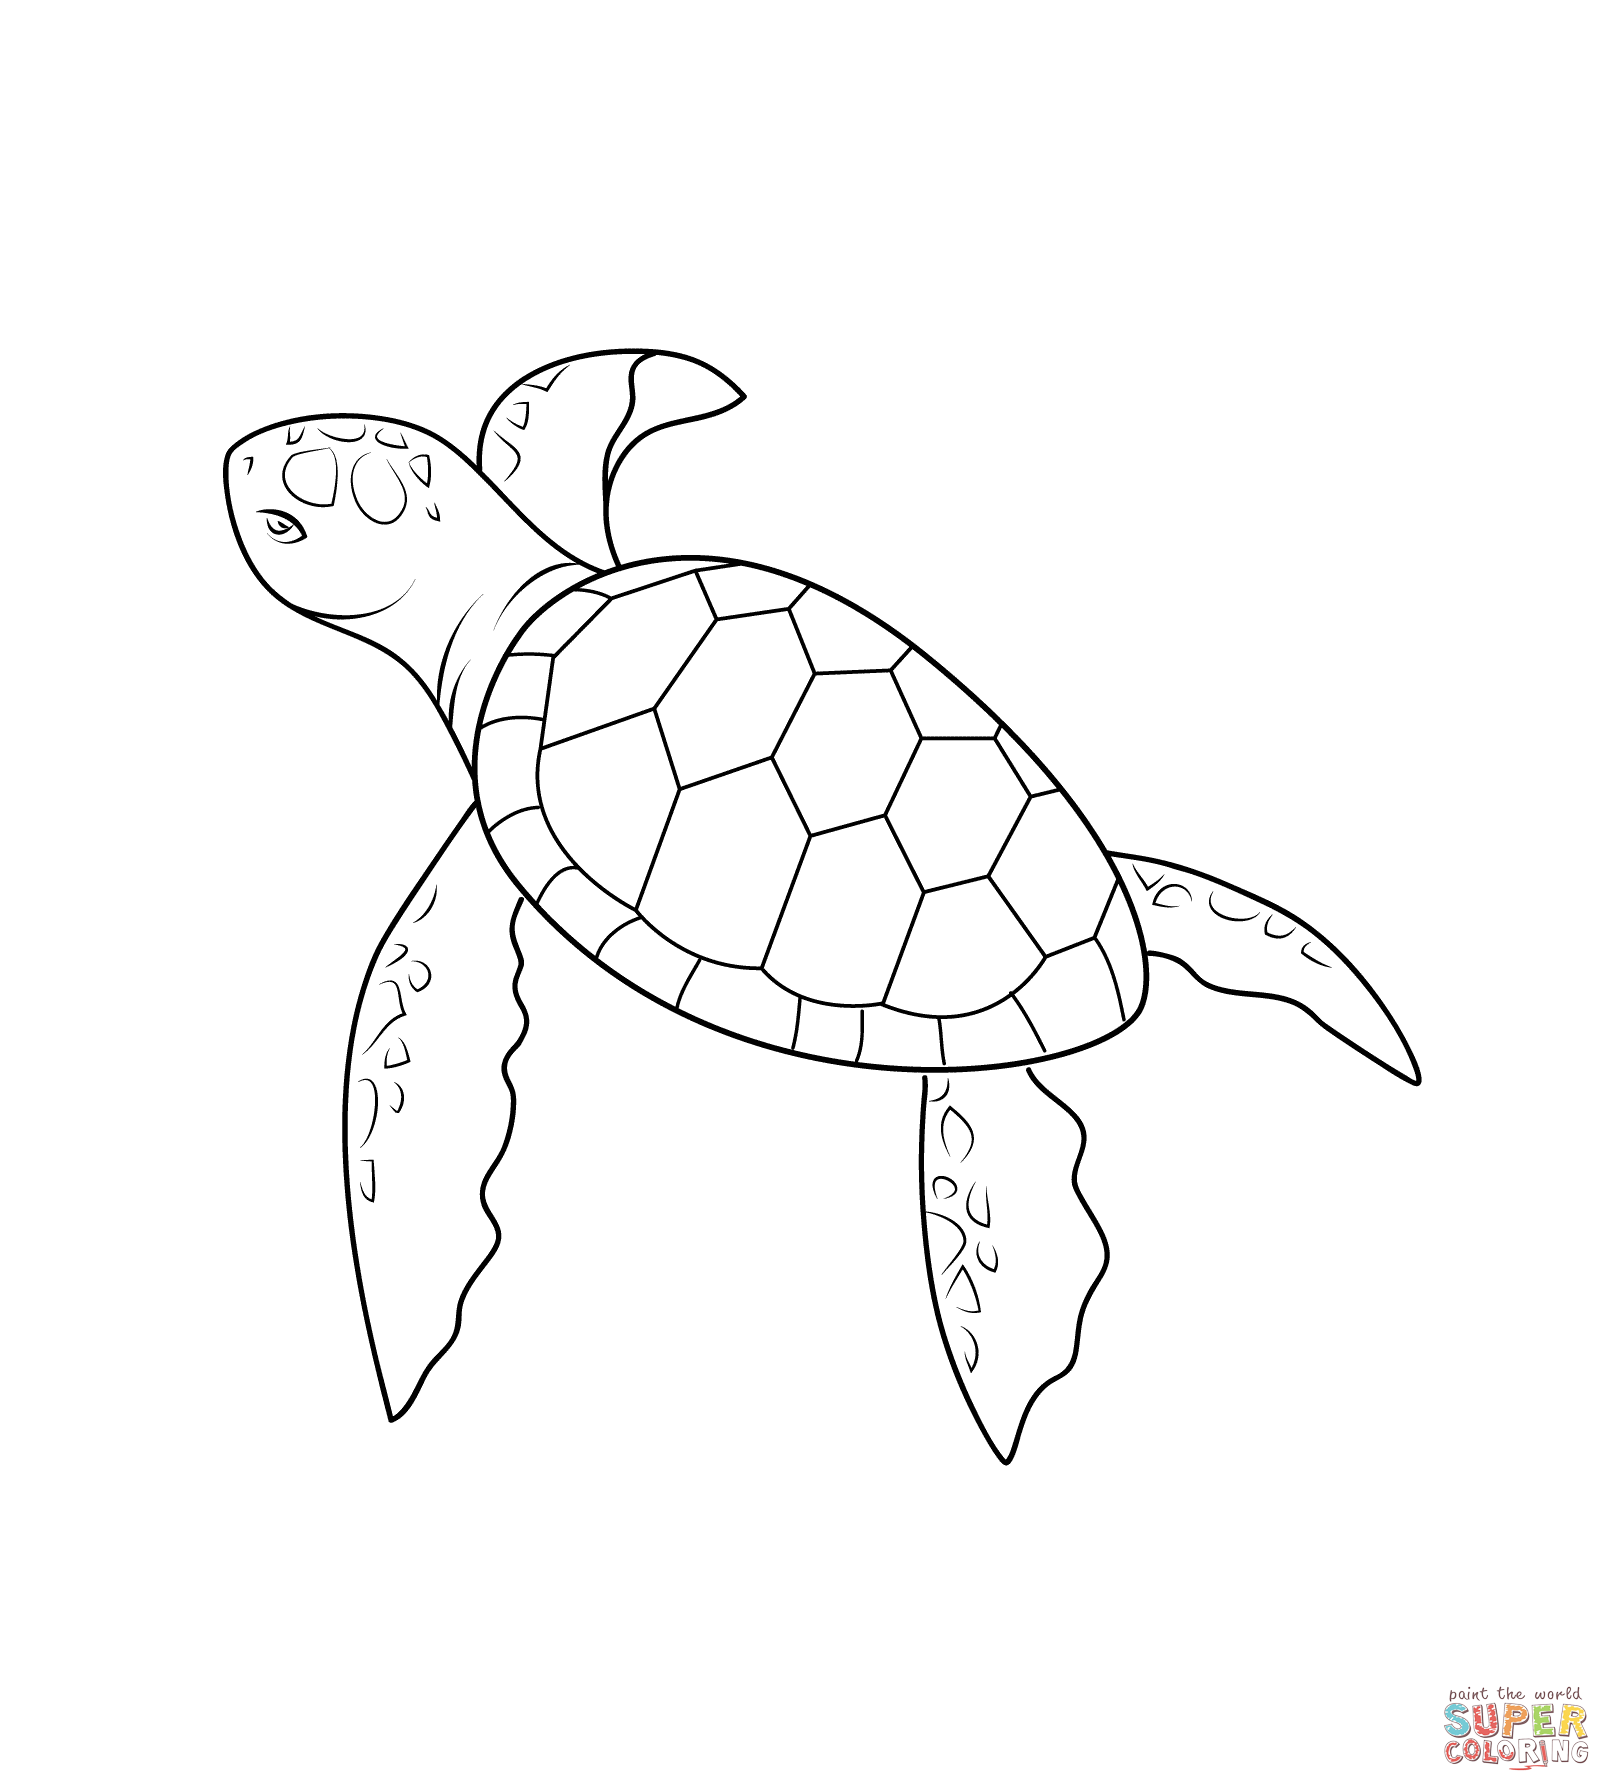 Leatherback Sea Turtle Drawing At Getdrawings Com Free